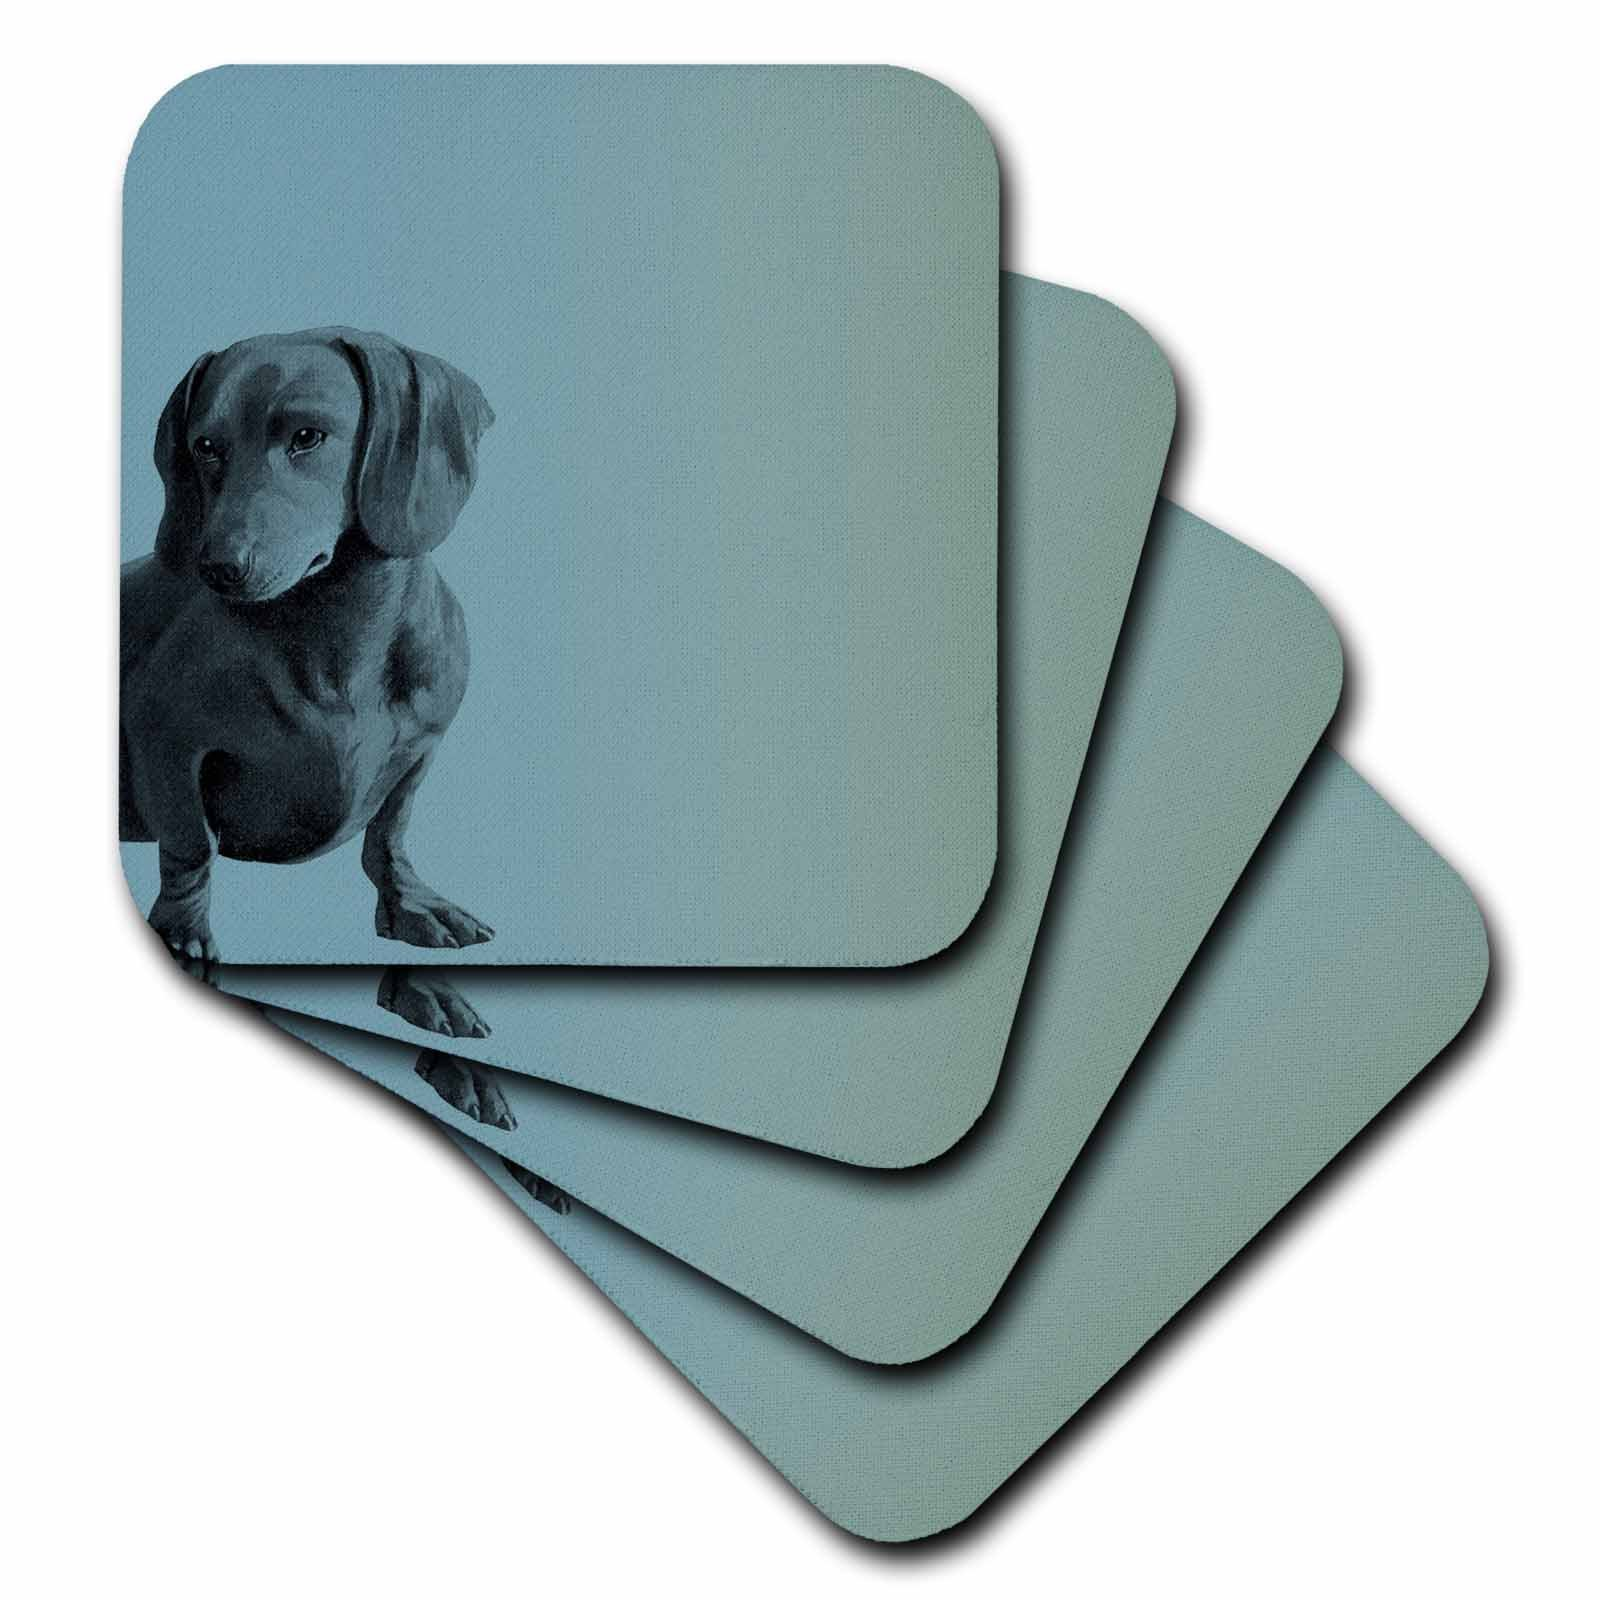 3dRose cst_130560_1 Adorable Daschund Dog Pets Animals Soft Coasters, Set of 4 by 3dRose